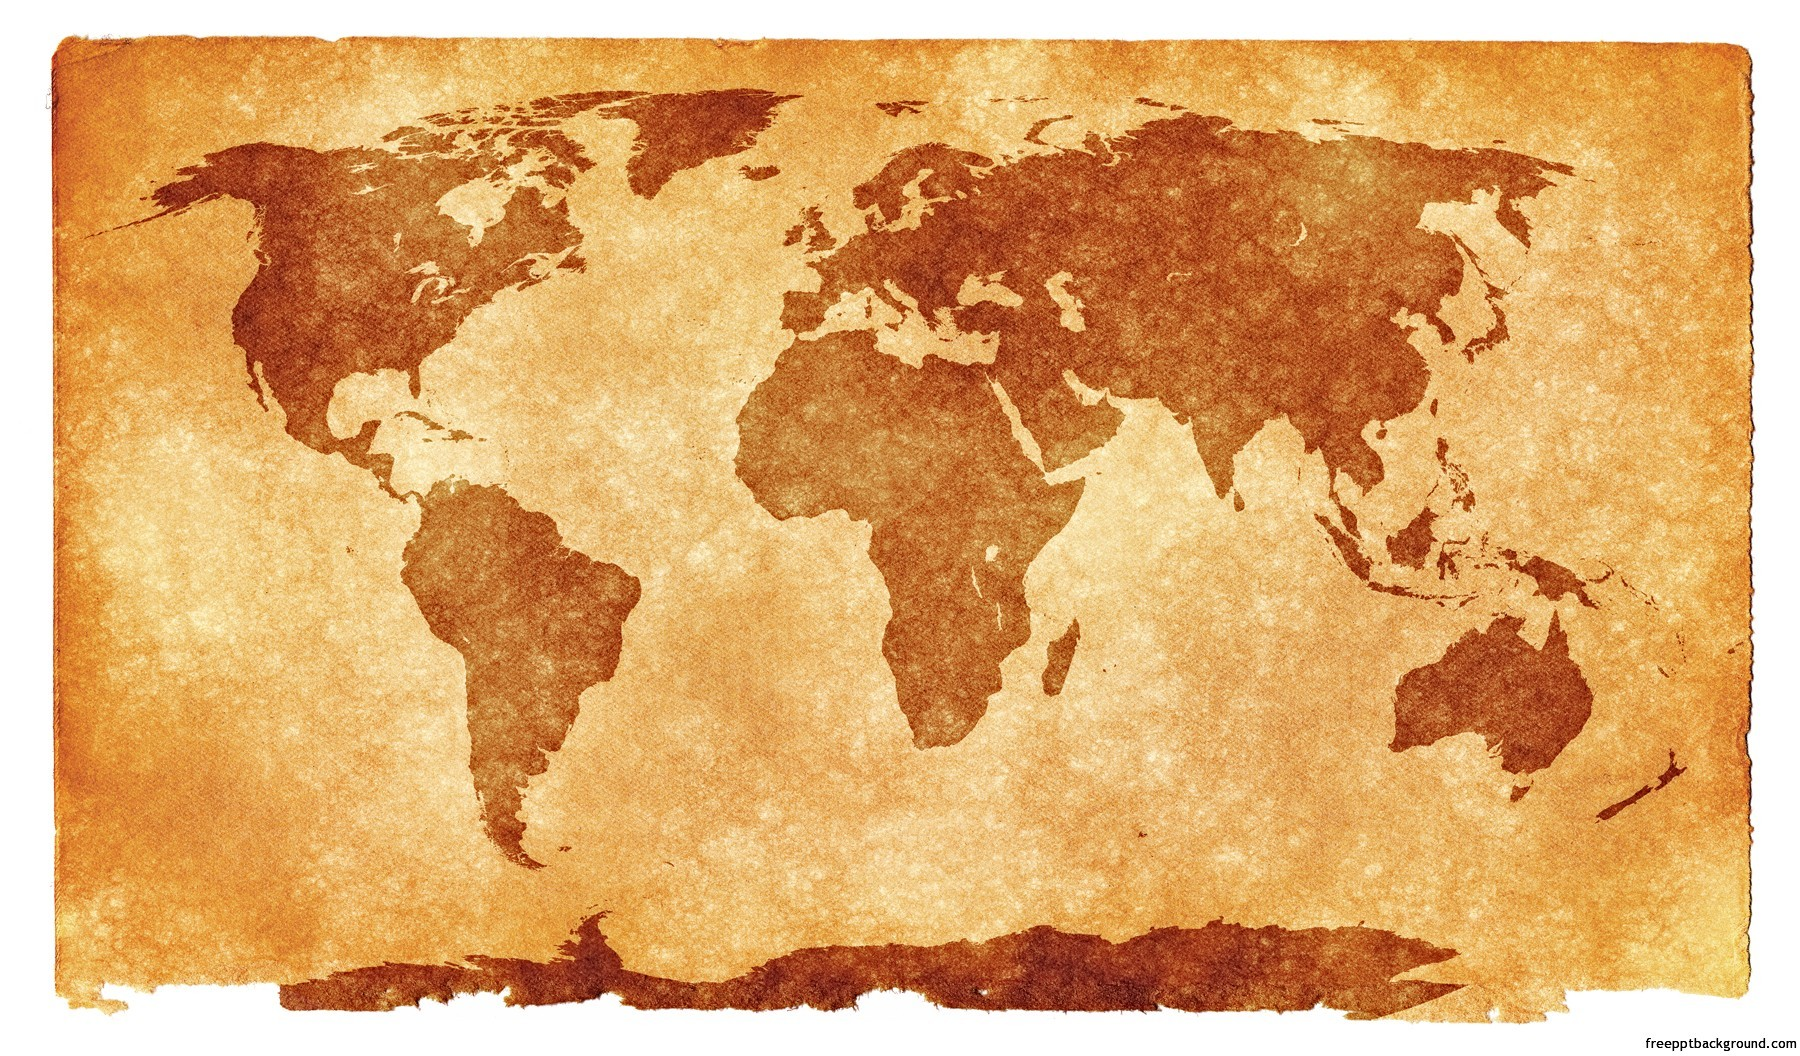 Grunge textured world map for ppt presentations free ppt backgrounds tags gumiabroncs Gallery